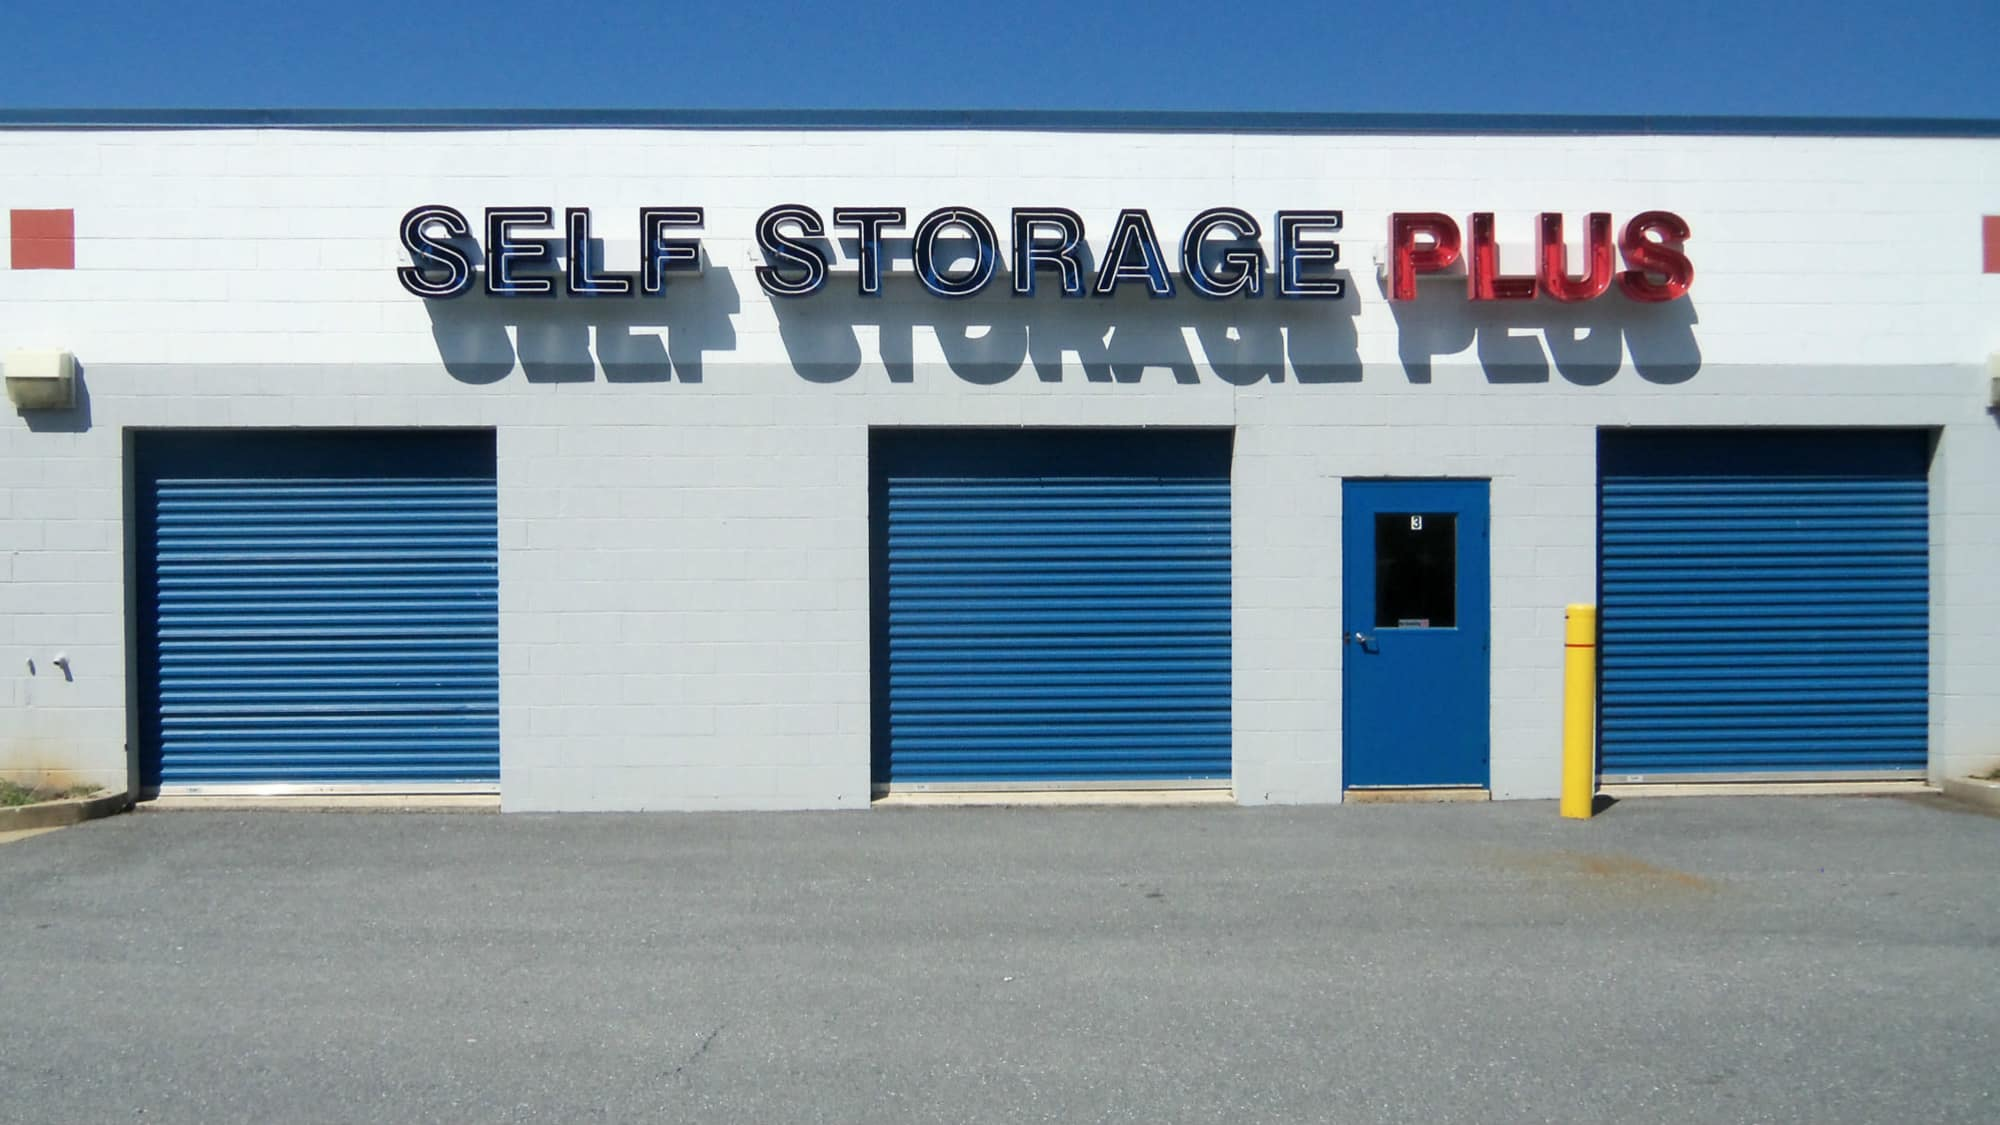 Exterior sign at Self Storage Plus in Walkersville, MD